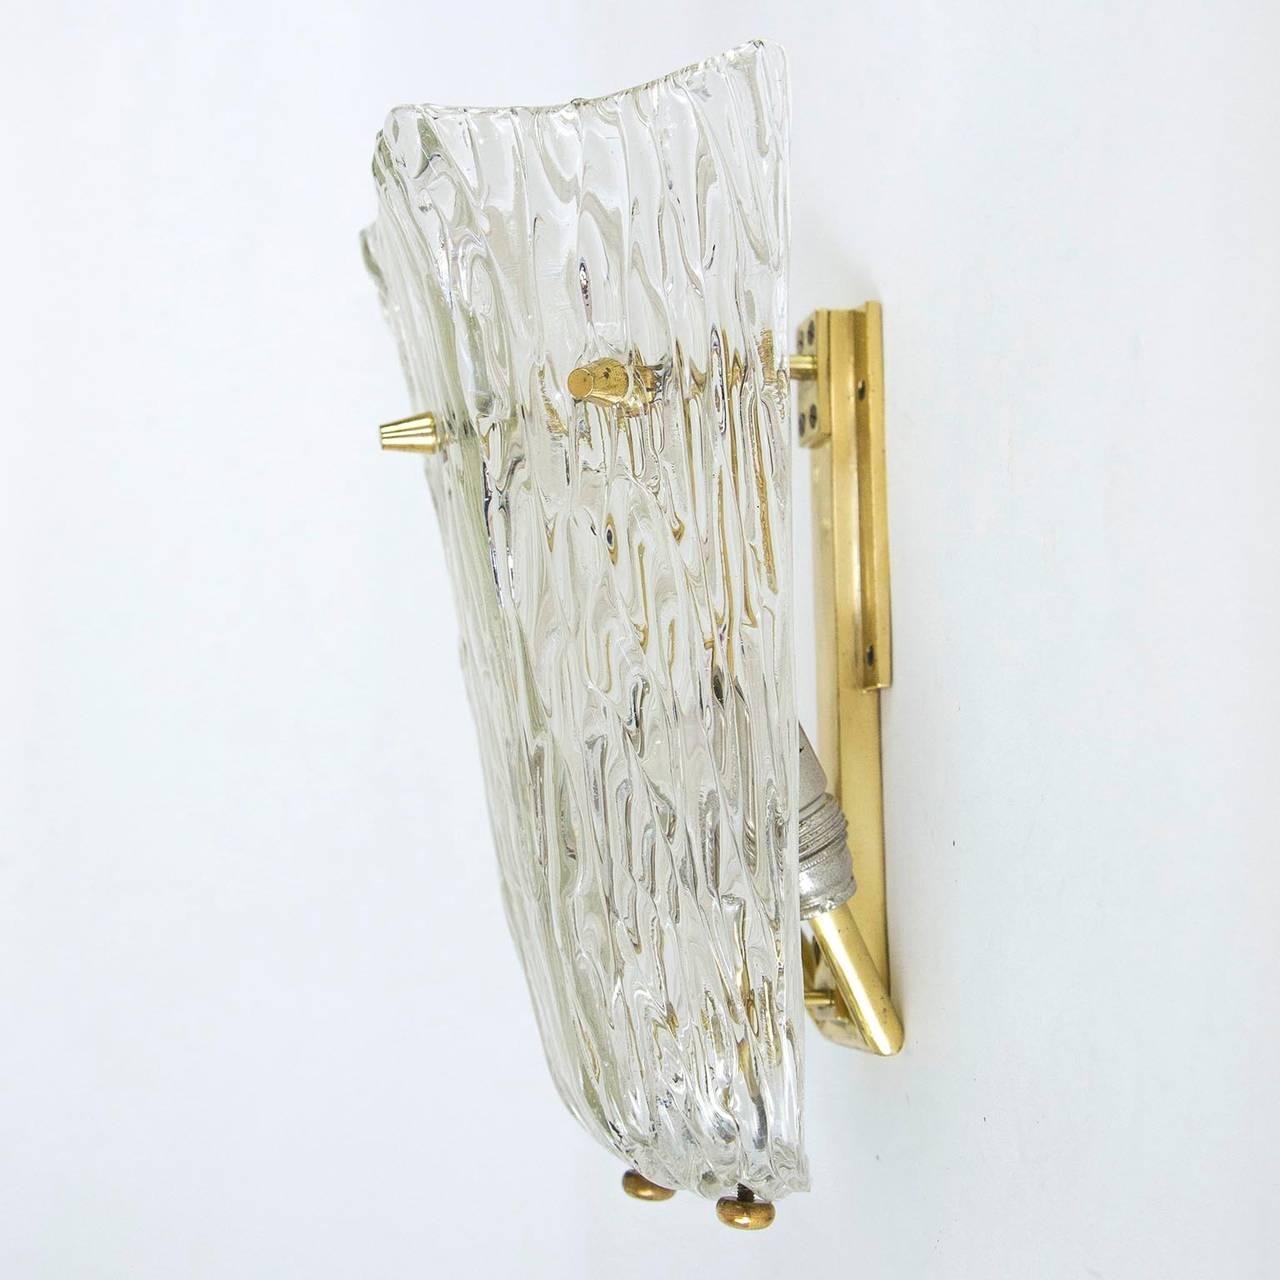 One of Three Textured Glass And Brass Wall Sconces by J.T. Kalmar, 1950s For Sale 1